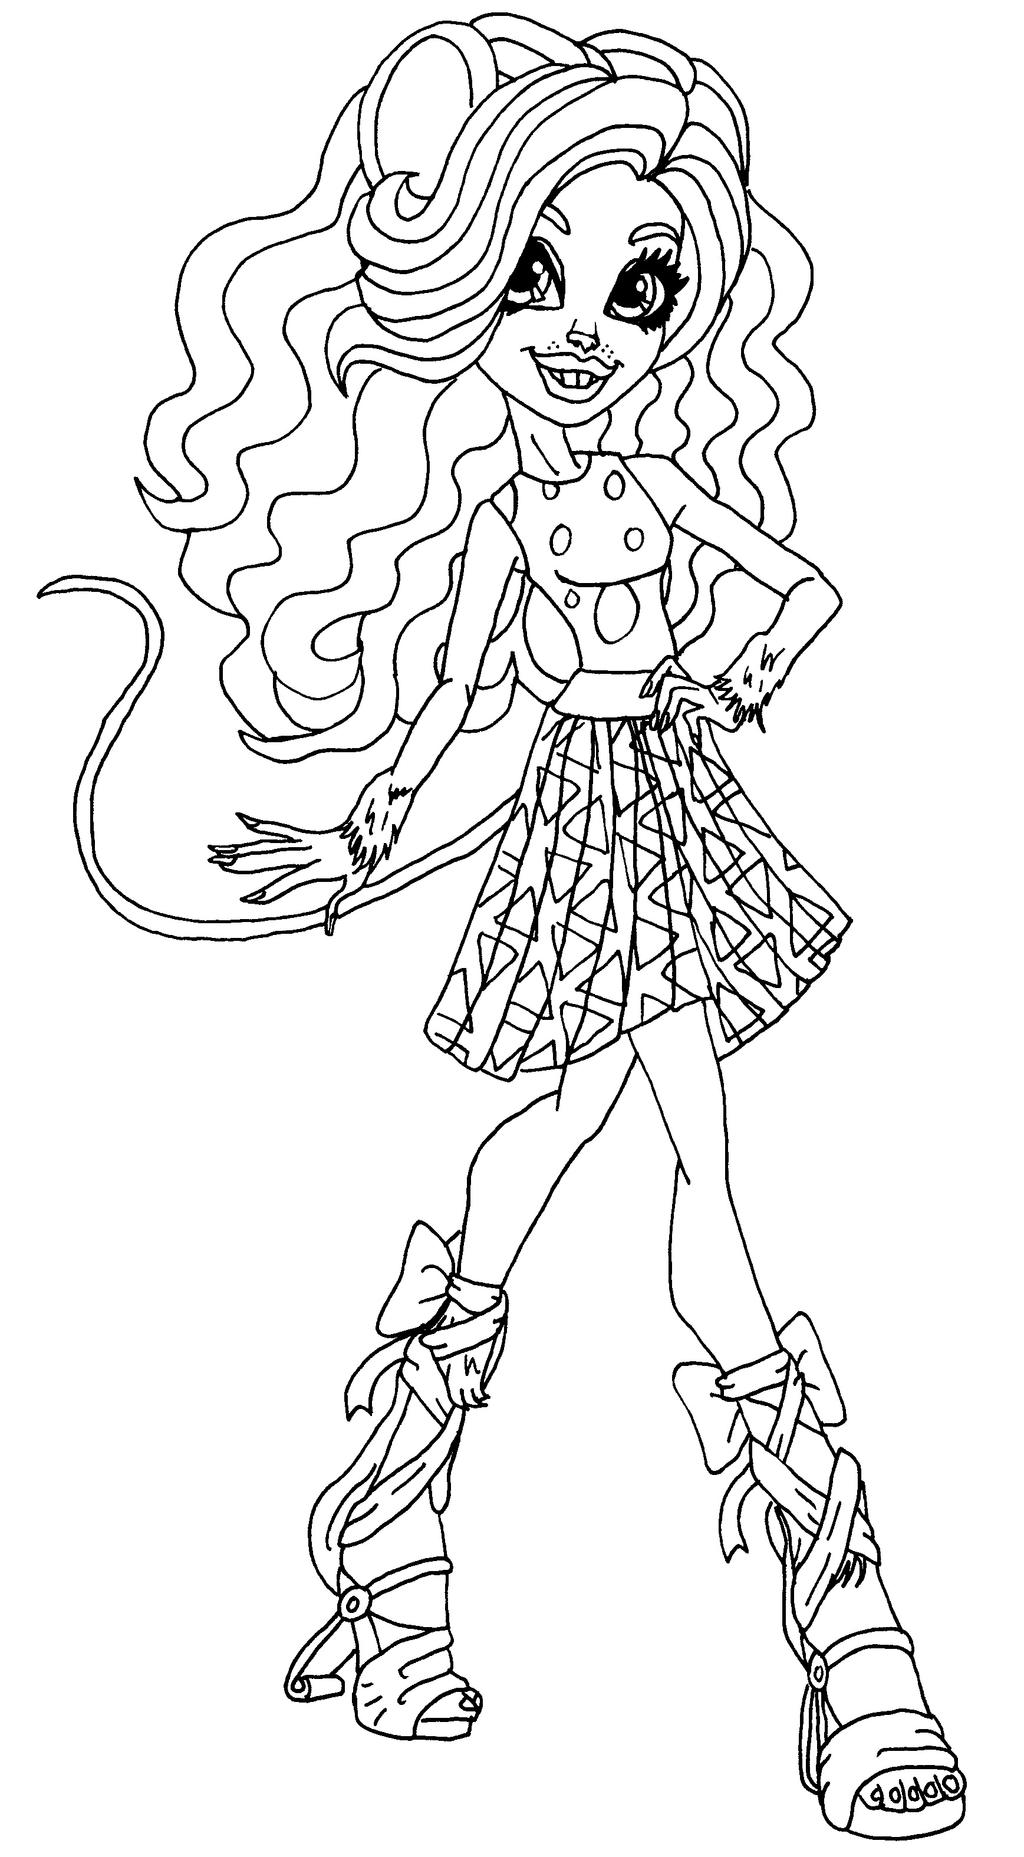 Monster high coloring pages by elfkena on deviantart for Monster high coloring pages 13 wishes